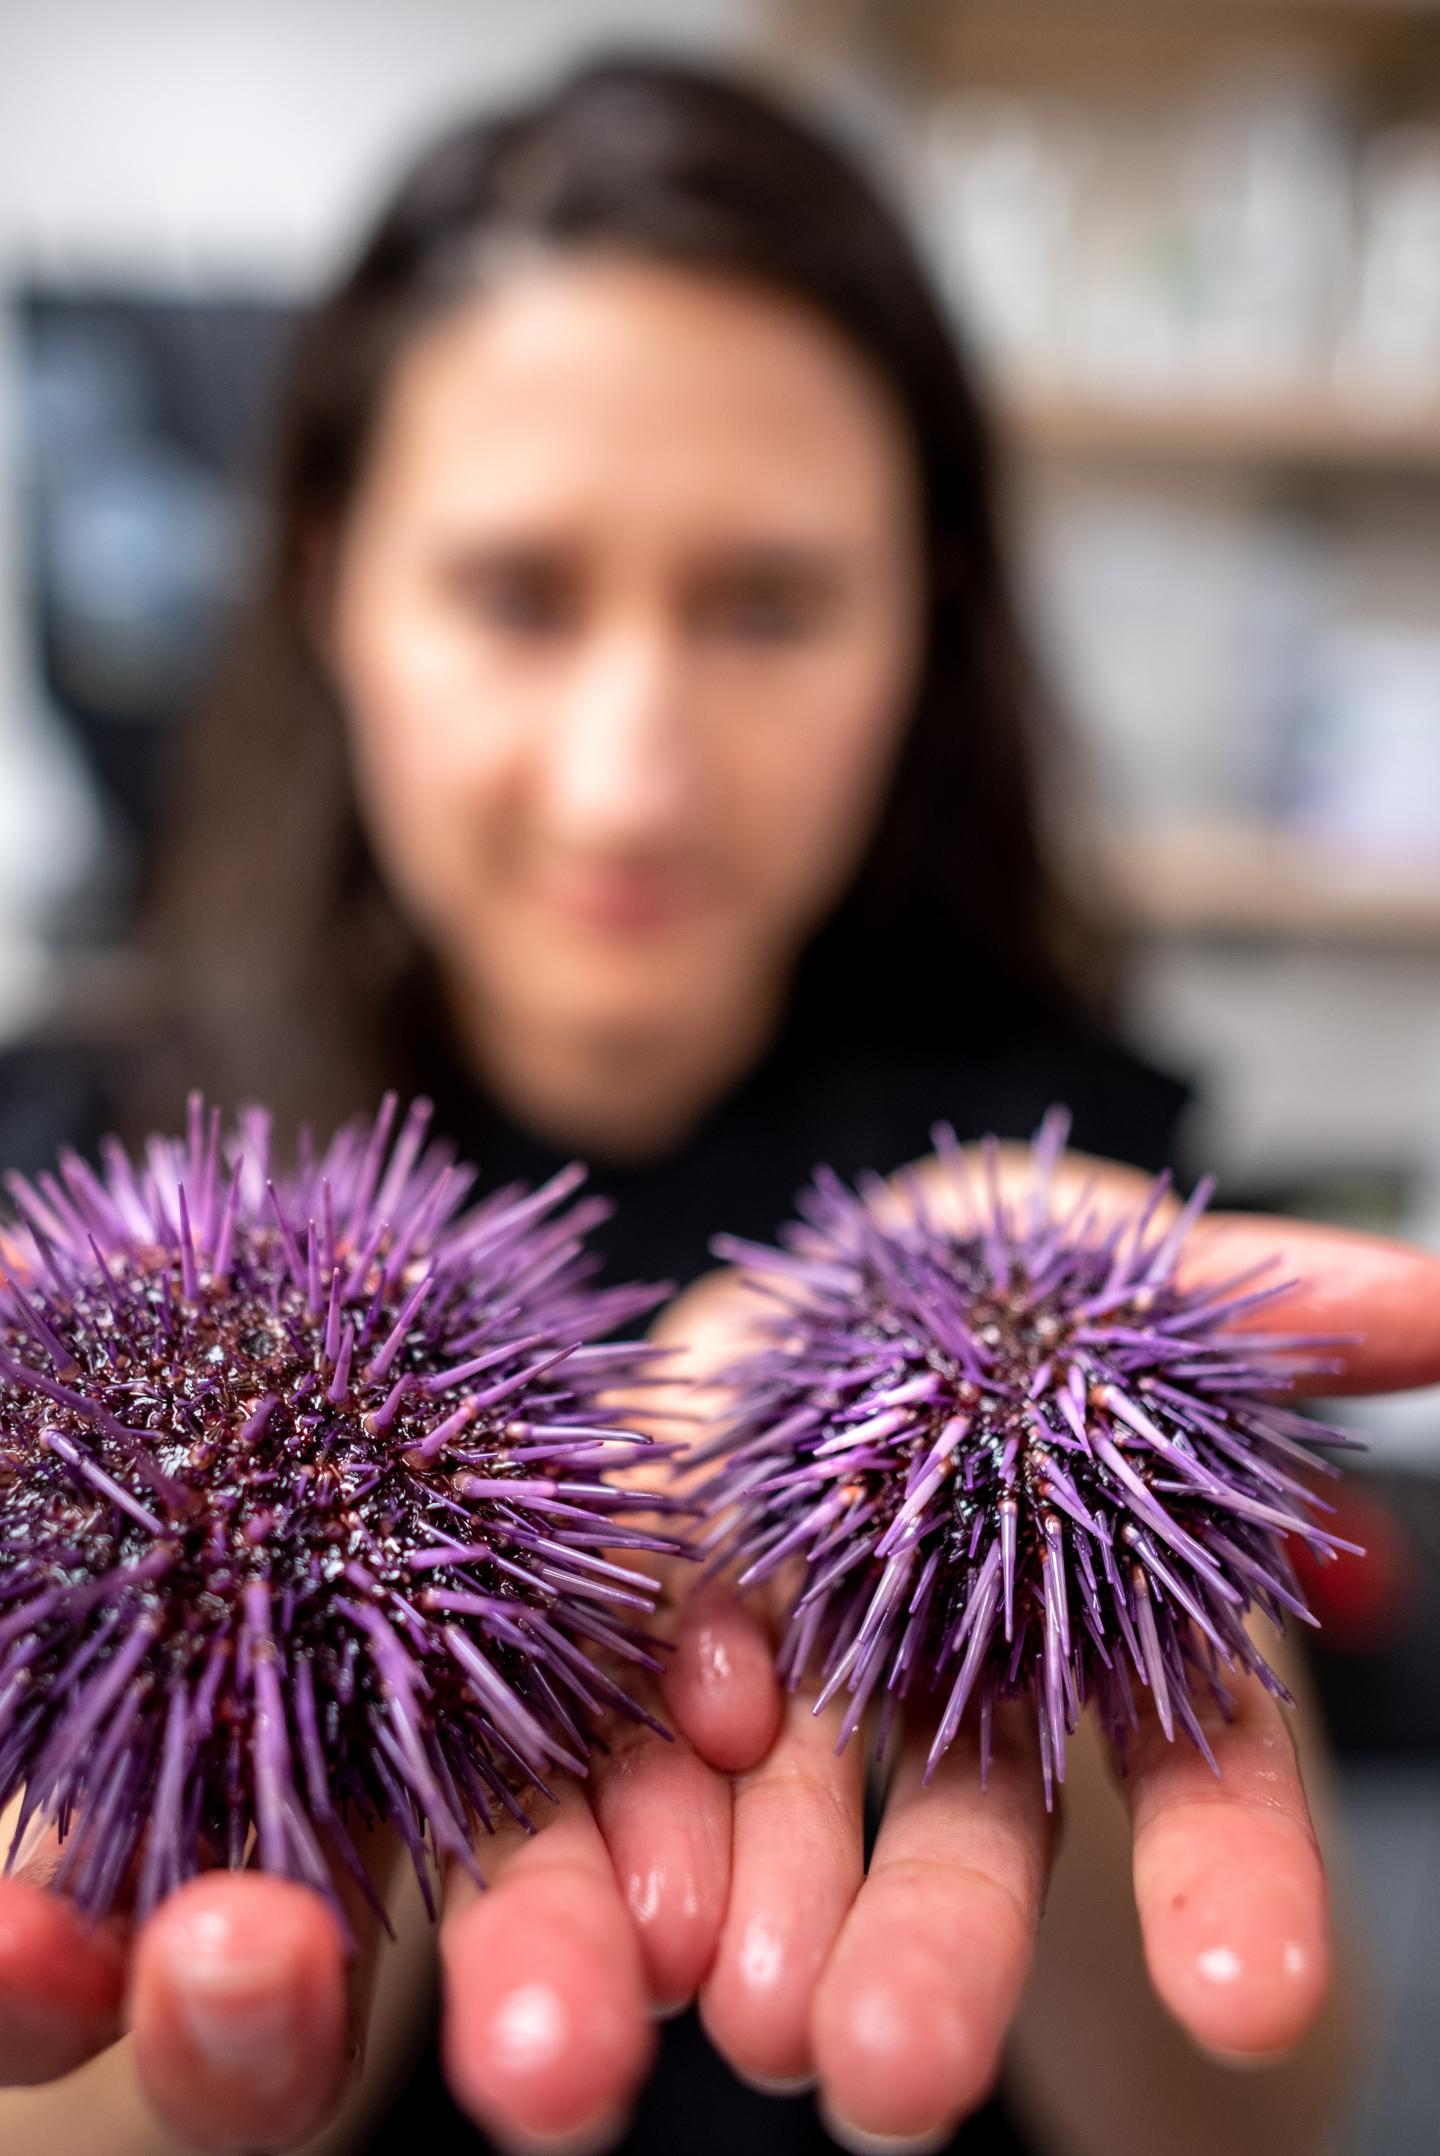 University of Vermont biologist Melissa Pespeni examines two purple sea urchins./ Credit: Joshua Brown/UVM